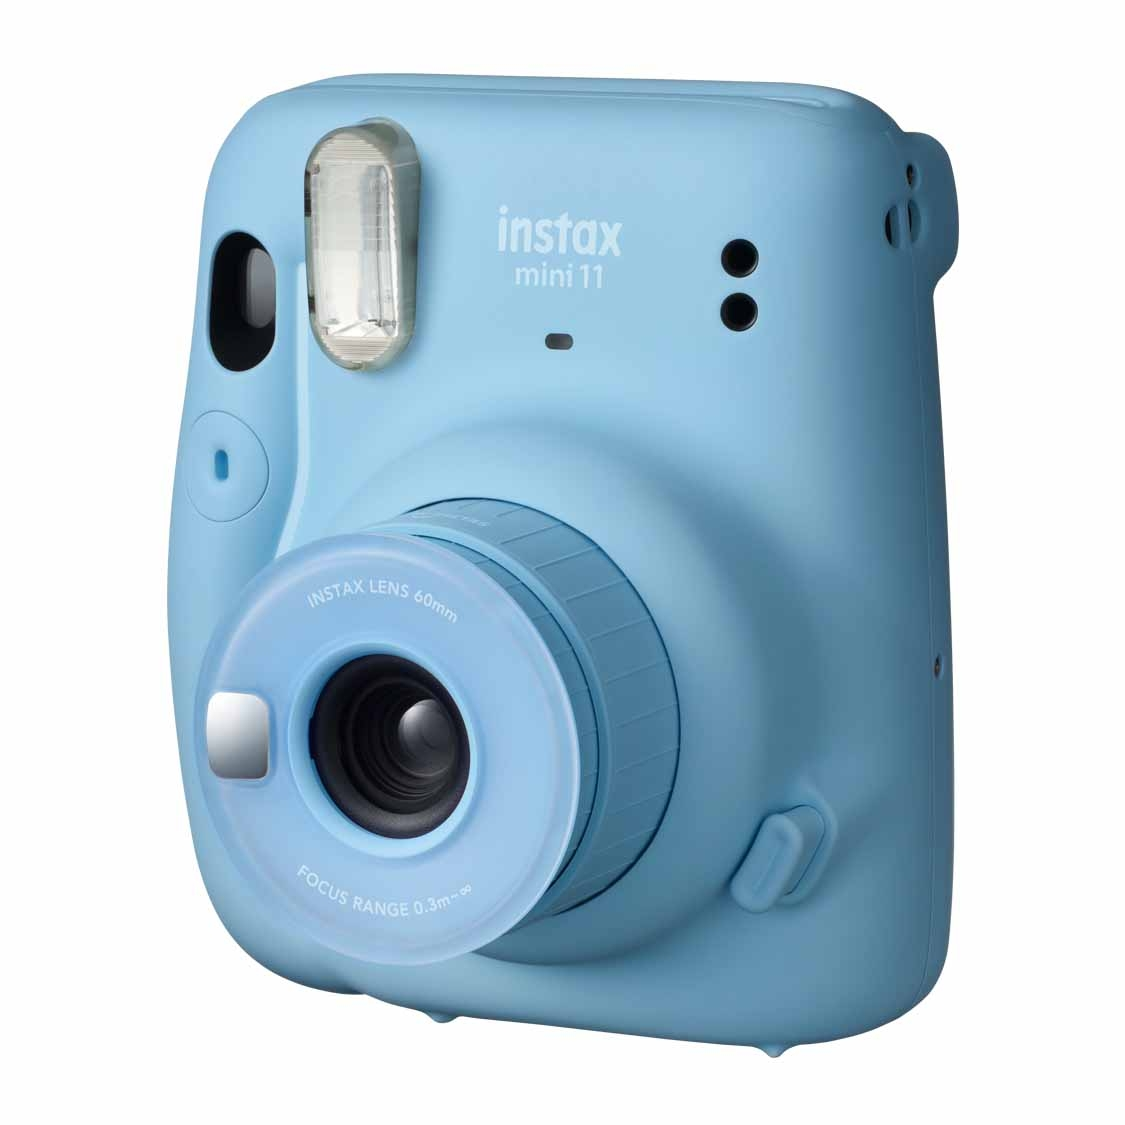 Fujifilm Instax Mini 11 Camera (sky blue)